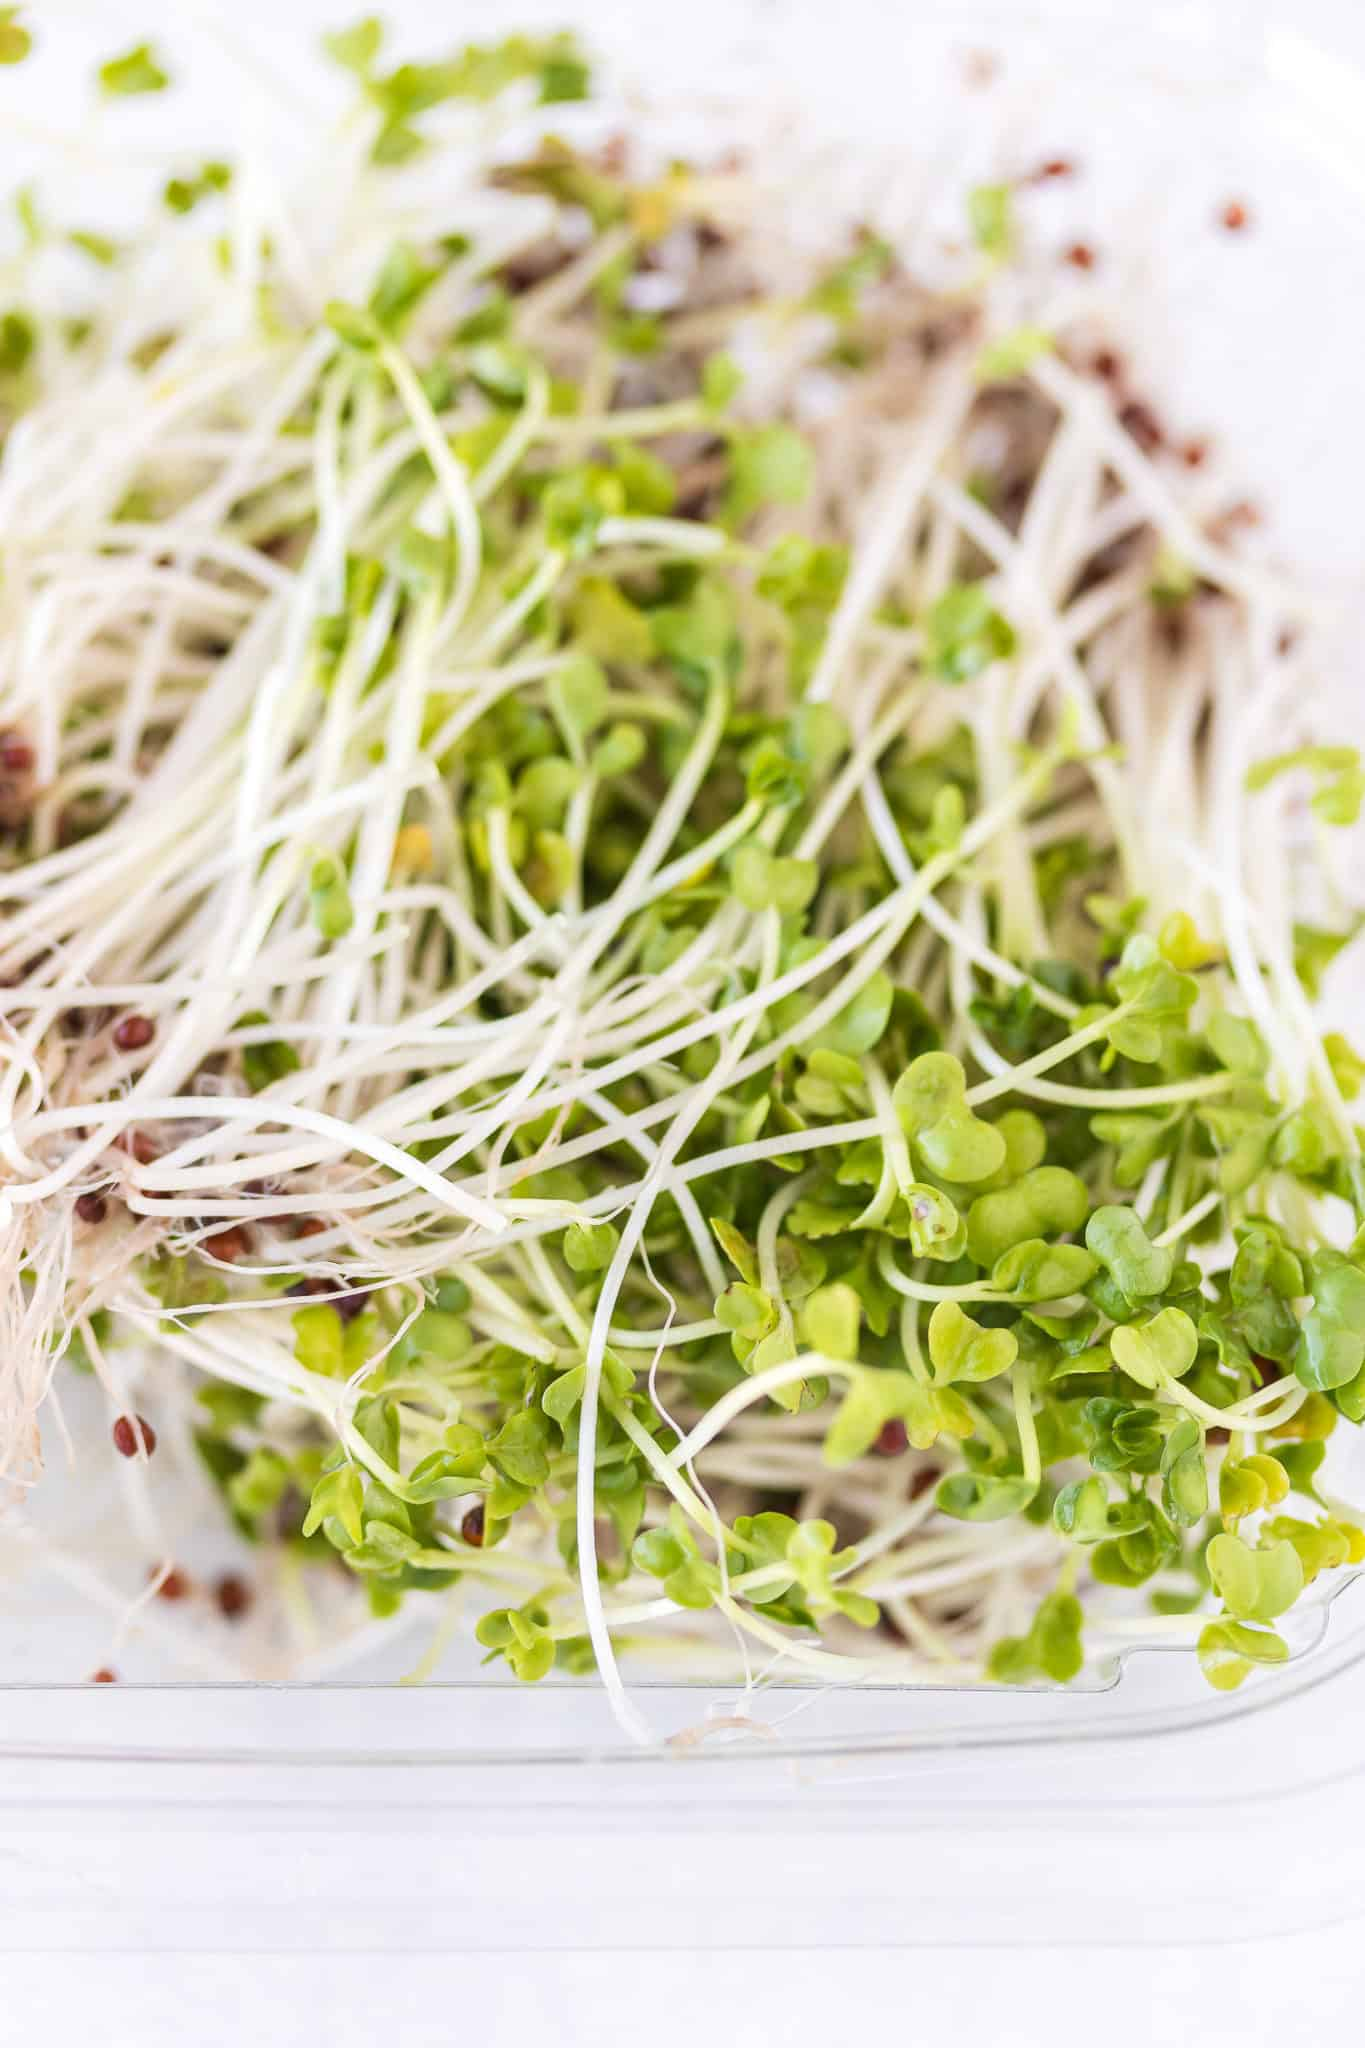 broccoli sprouts on a table